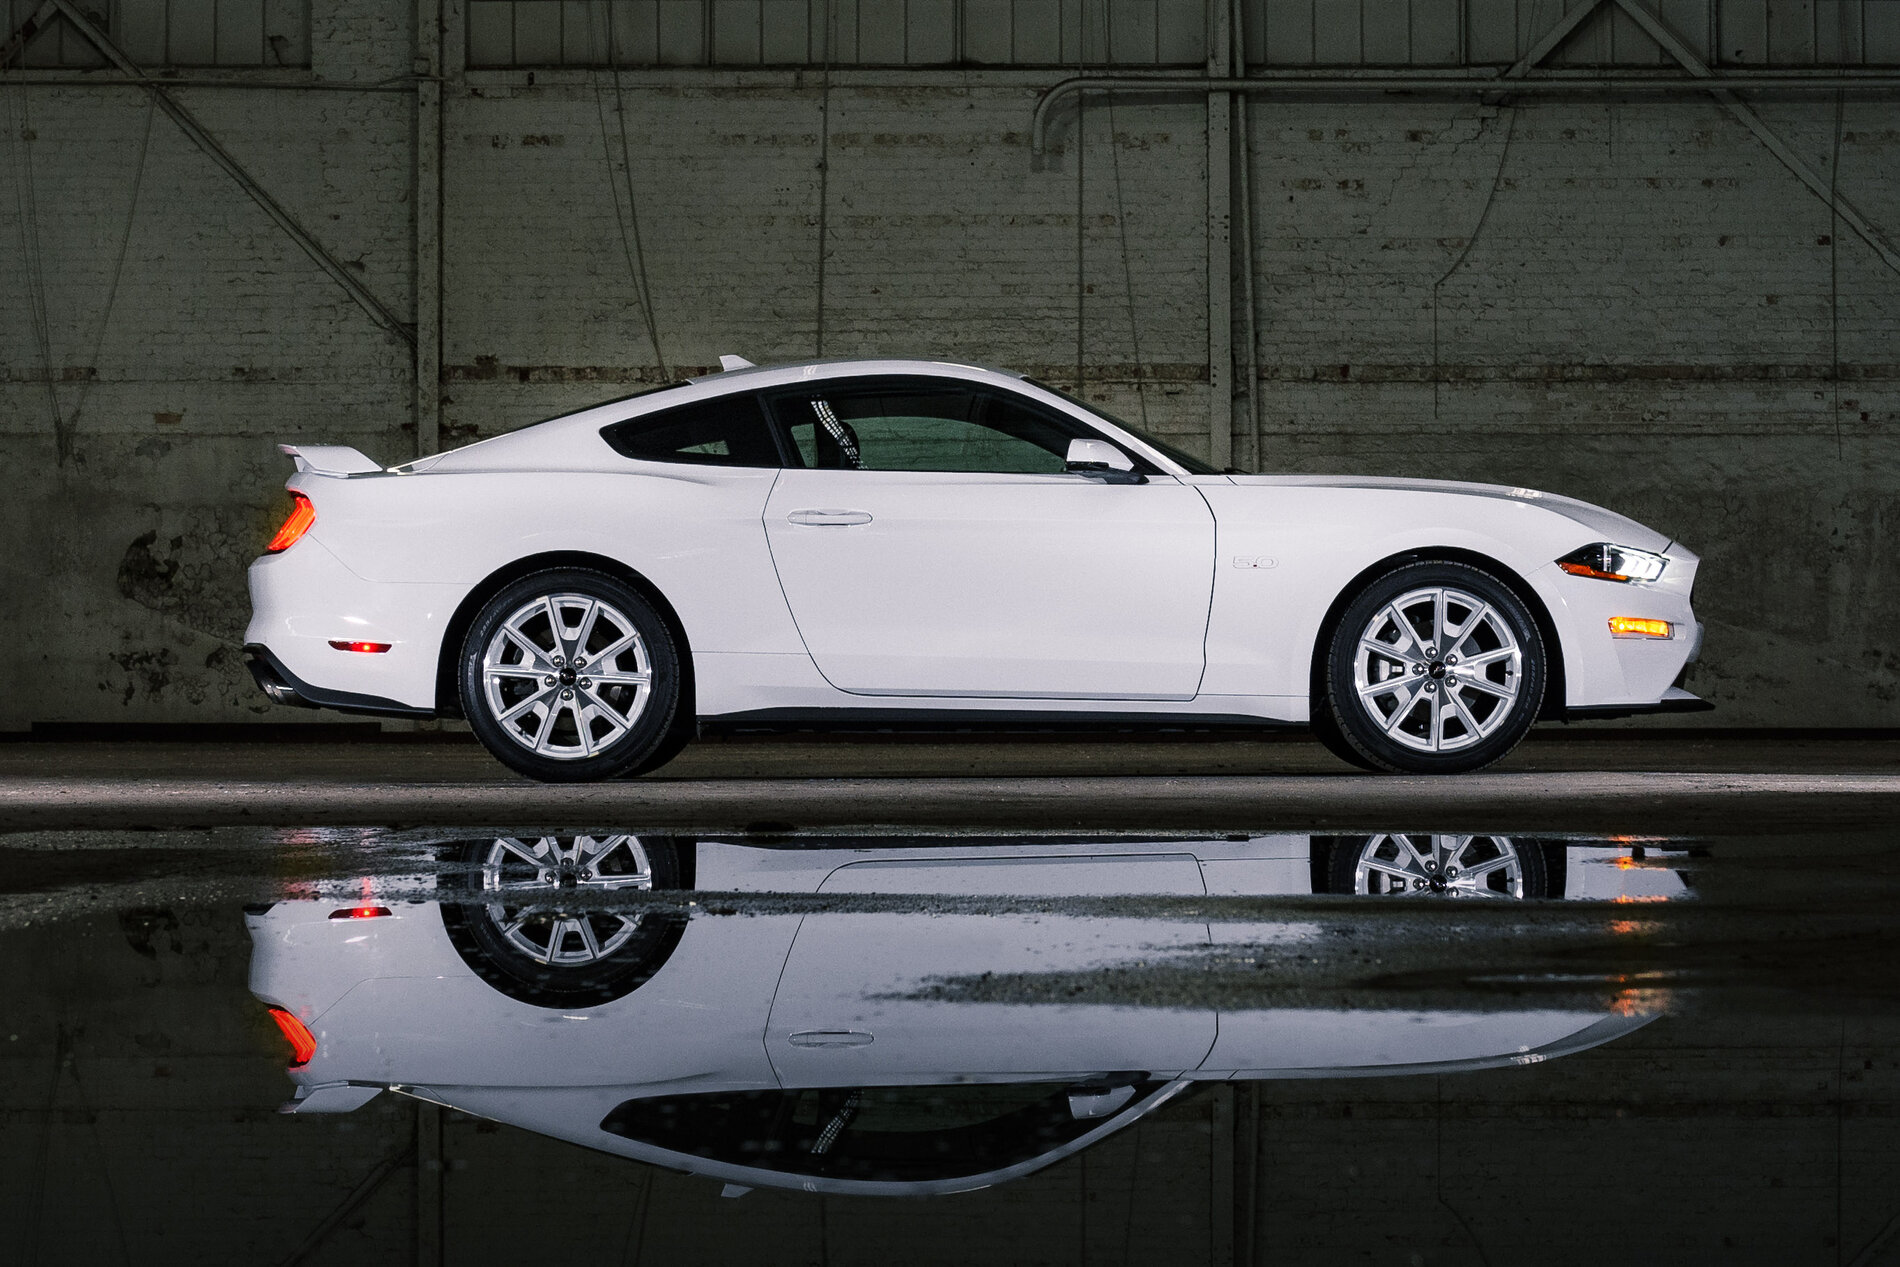 2022 Mustang Coupe Ice White Appearance Package_01.jpg